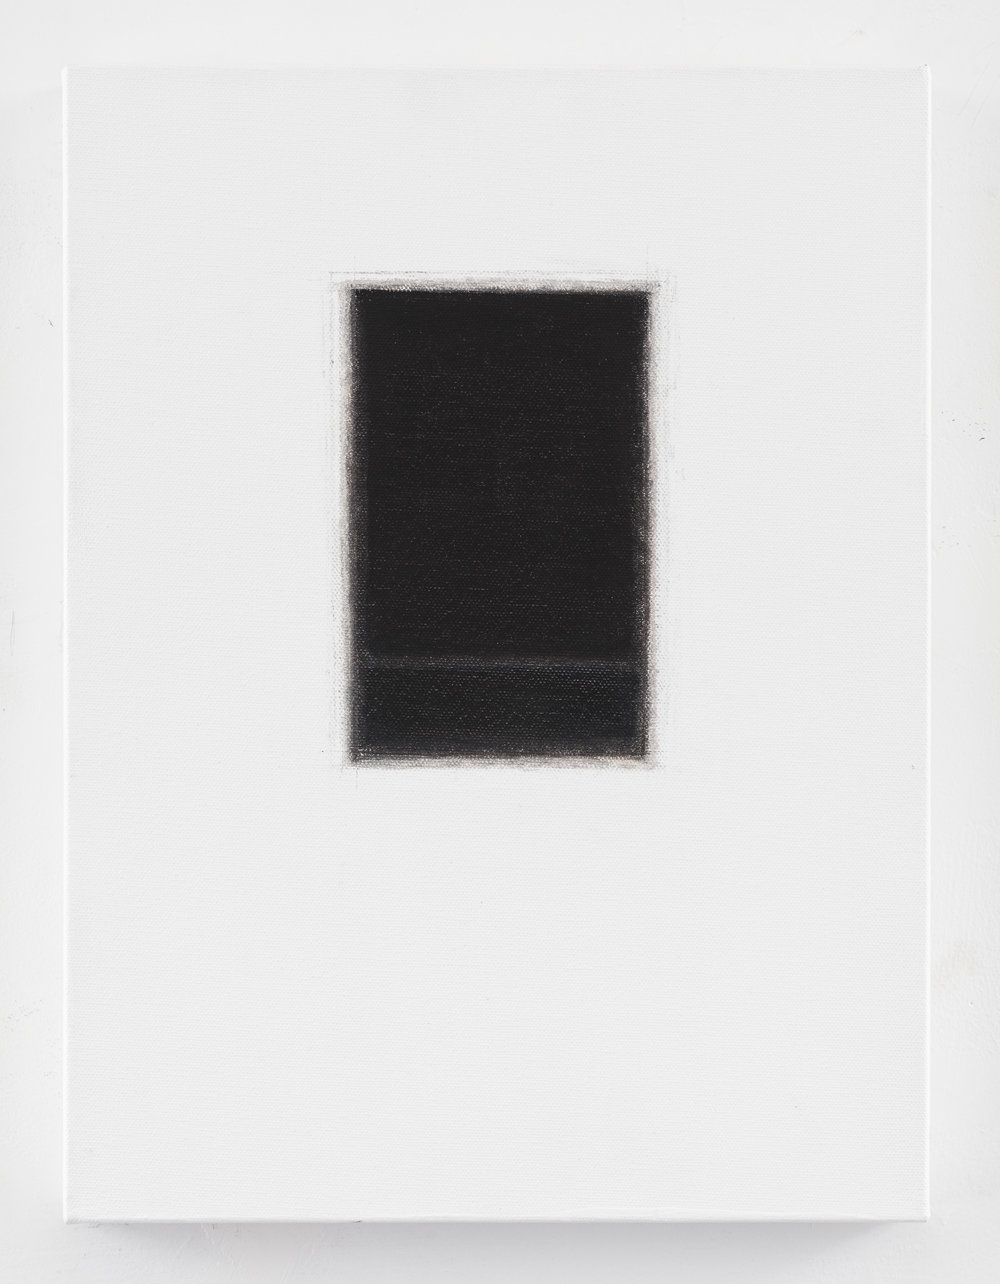 Rothko's window I, 2016, oil on canvas, 11 x 15 inches